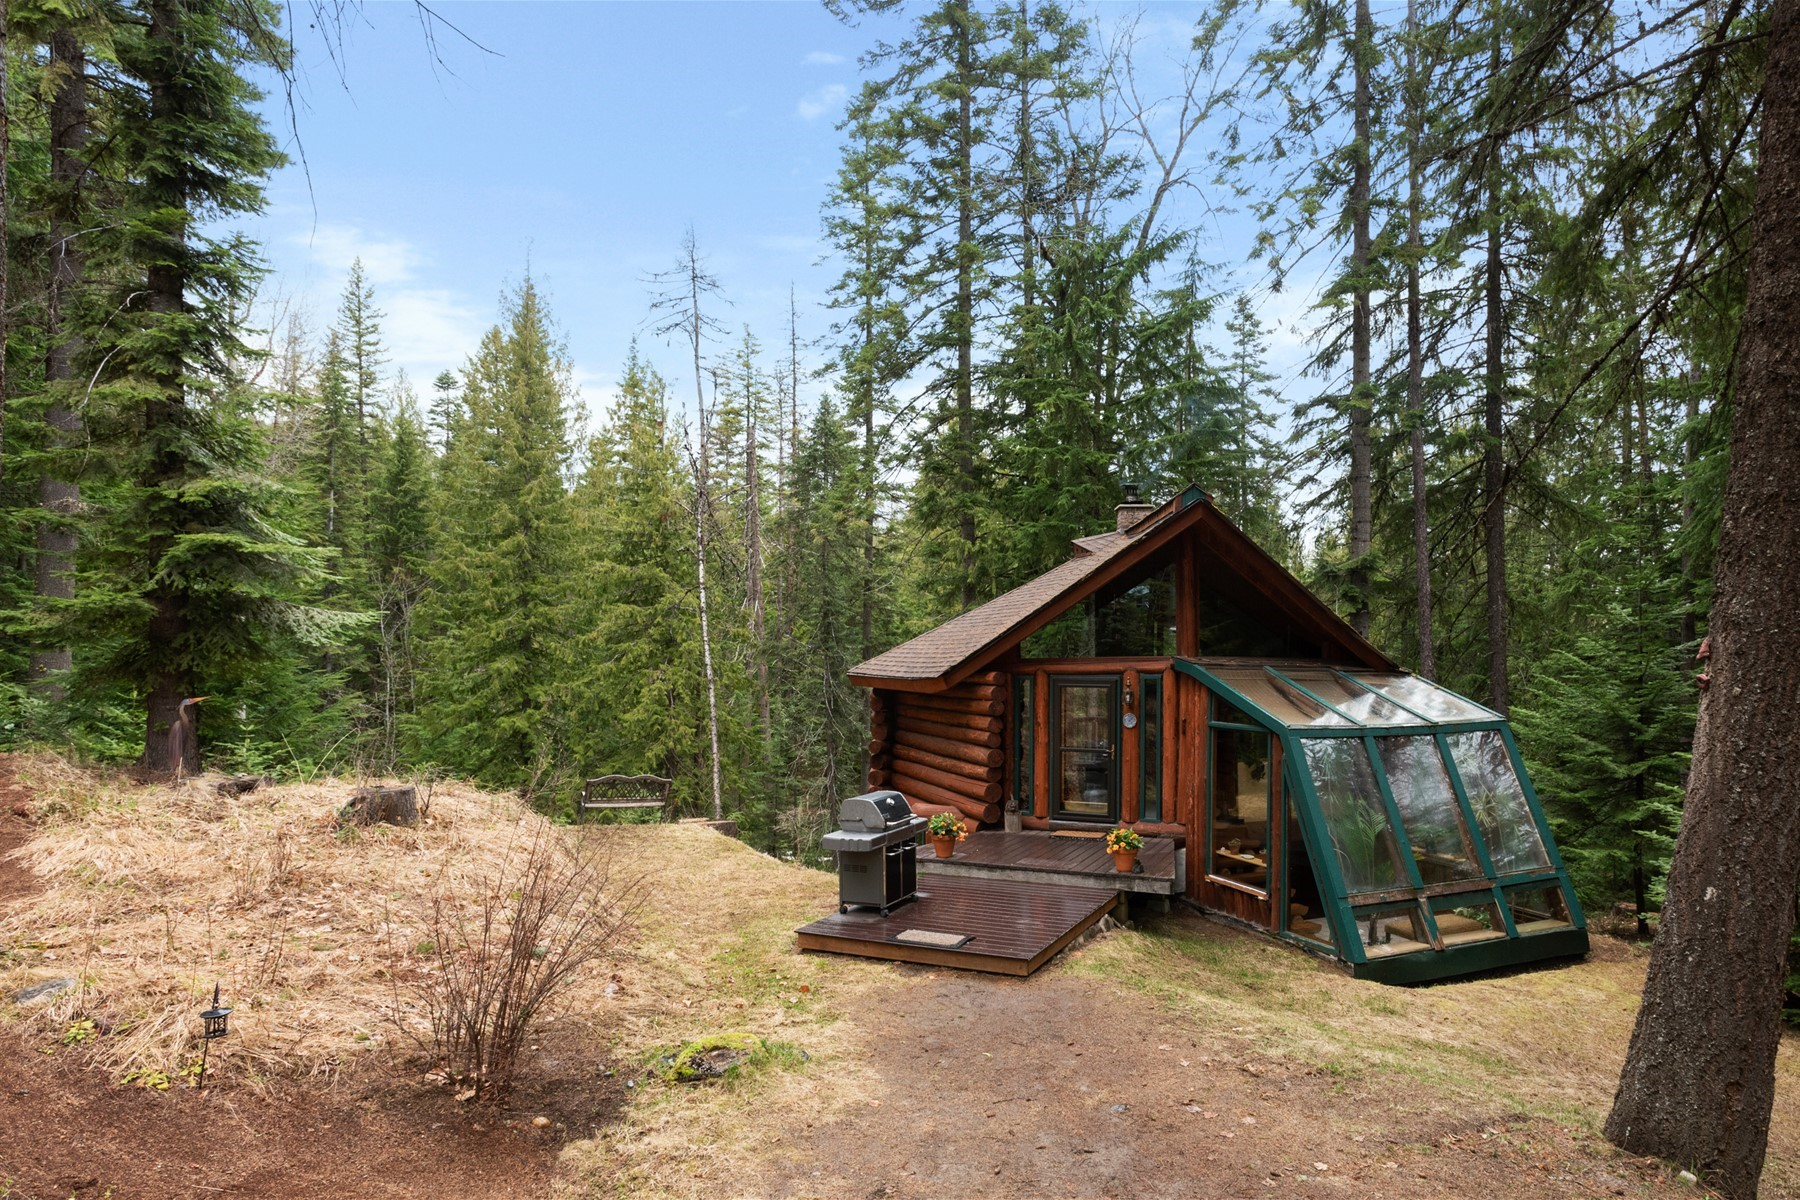 Single Family Home for Active at Delightful Log Cabin Overlooking Creek 2353 Roop Road Cocolalla, Idaho 83813 United States